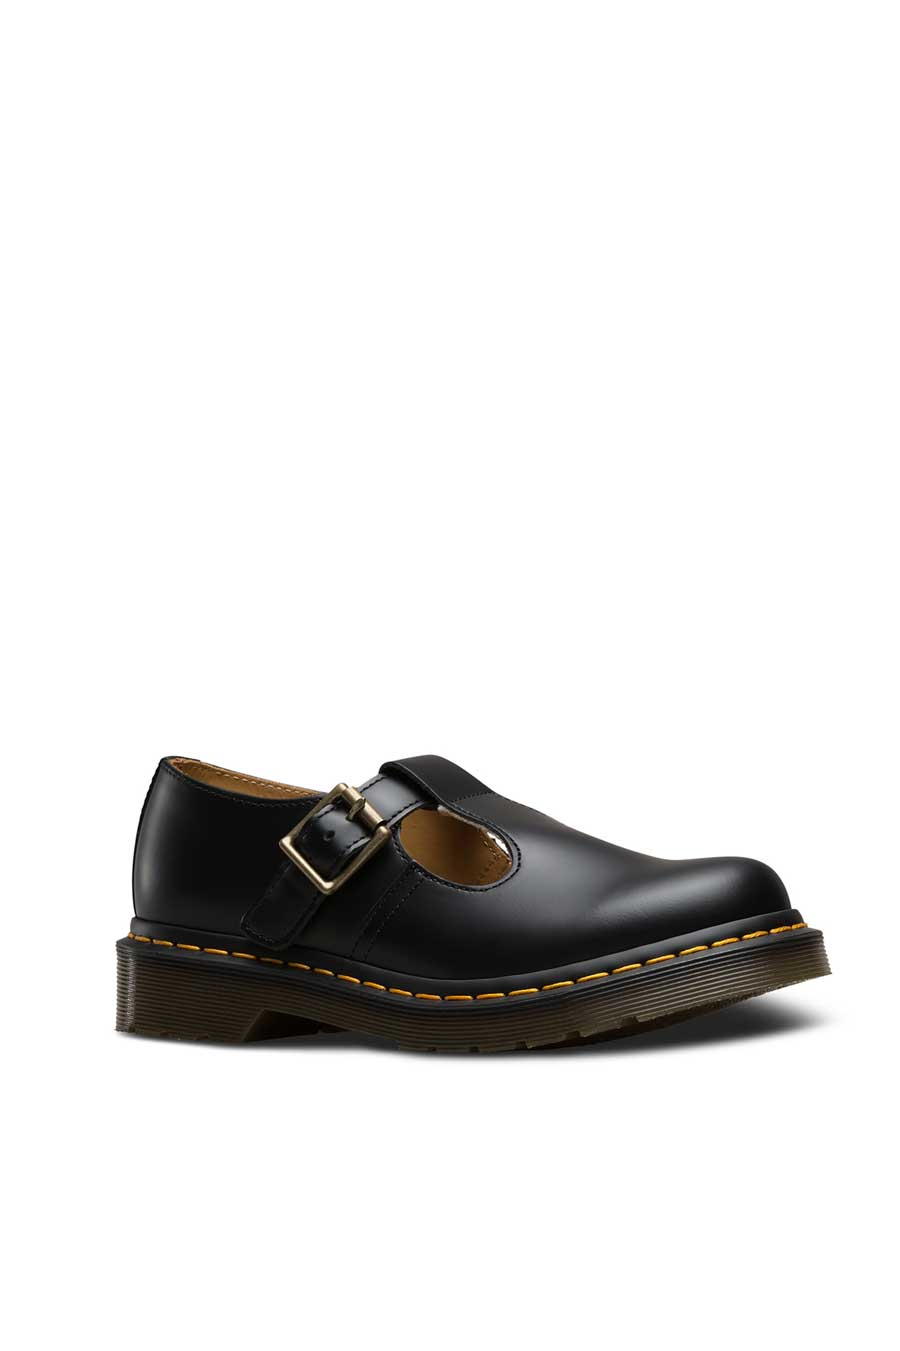 Dr Martens Polley Black